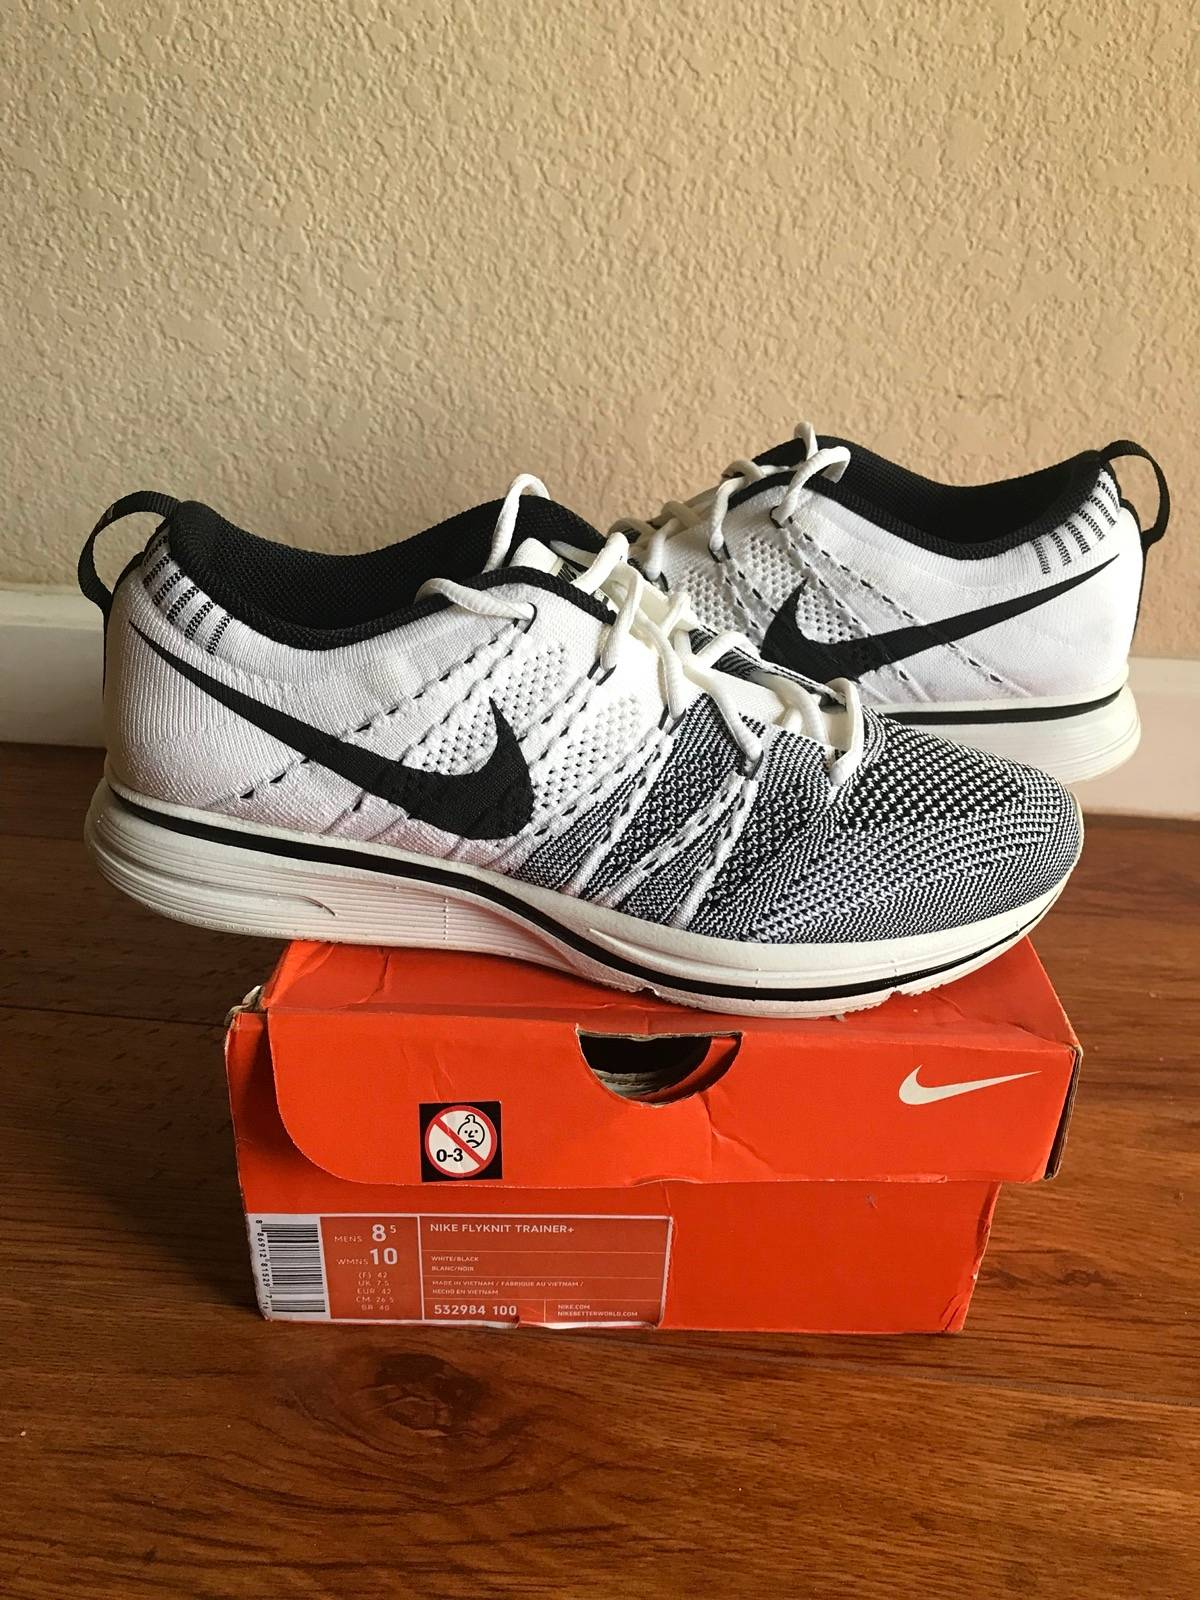 99931ba7bf71c1 Nike Flyknit Trainer White 2012 Padded Size 8.5 - Low-Top Sneakers ...